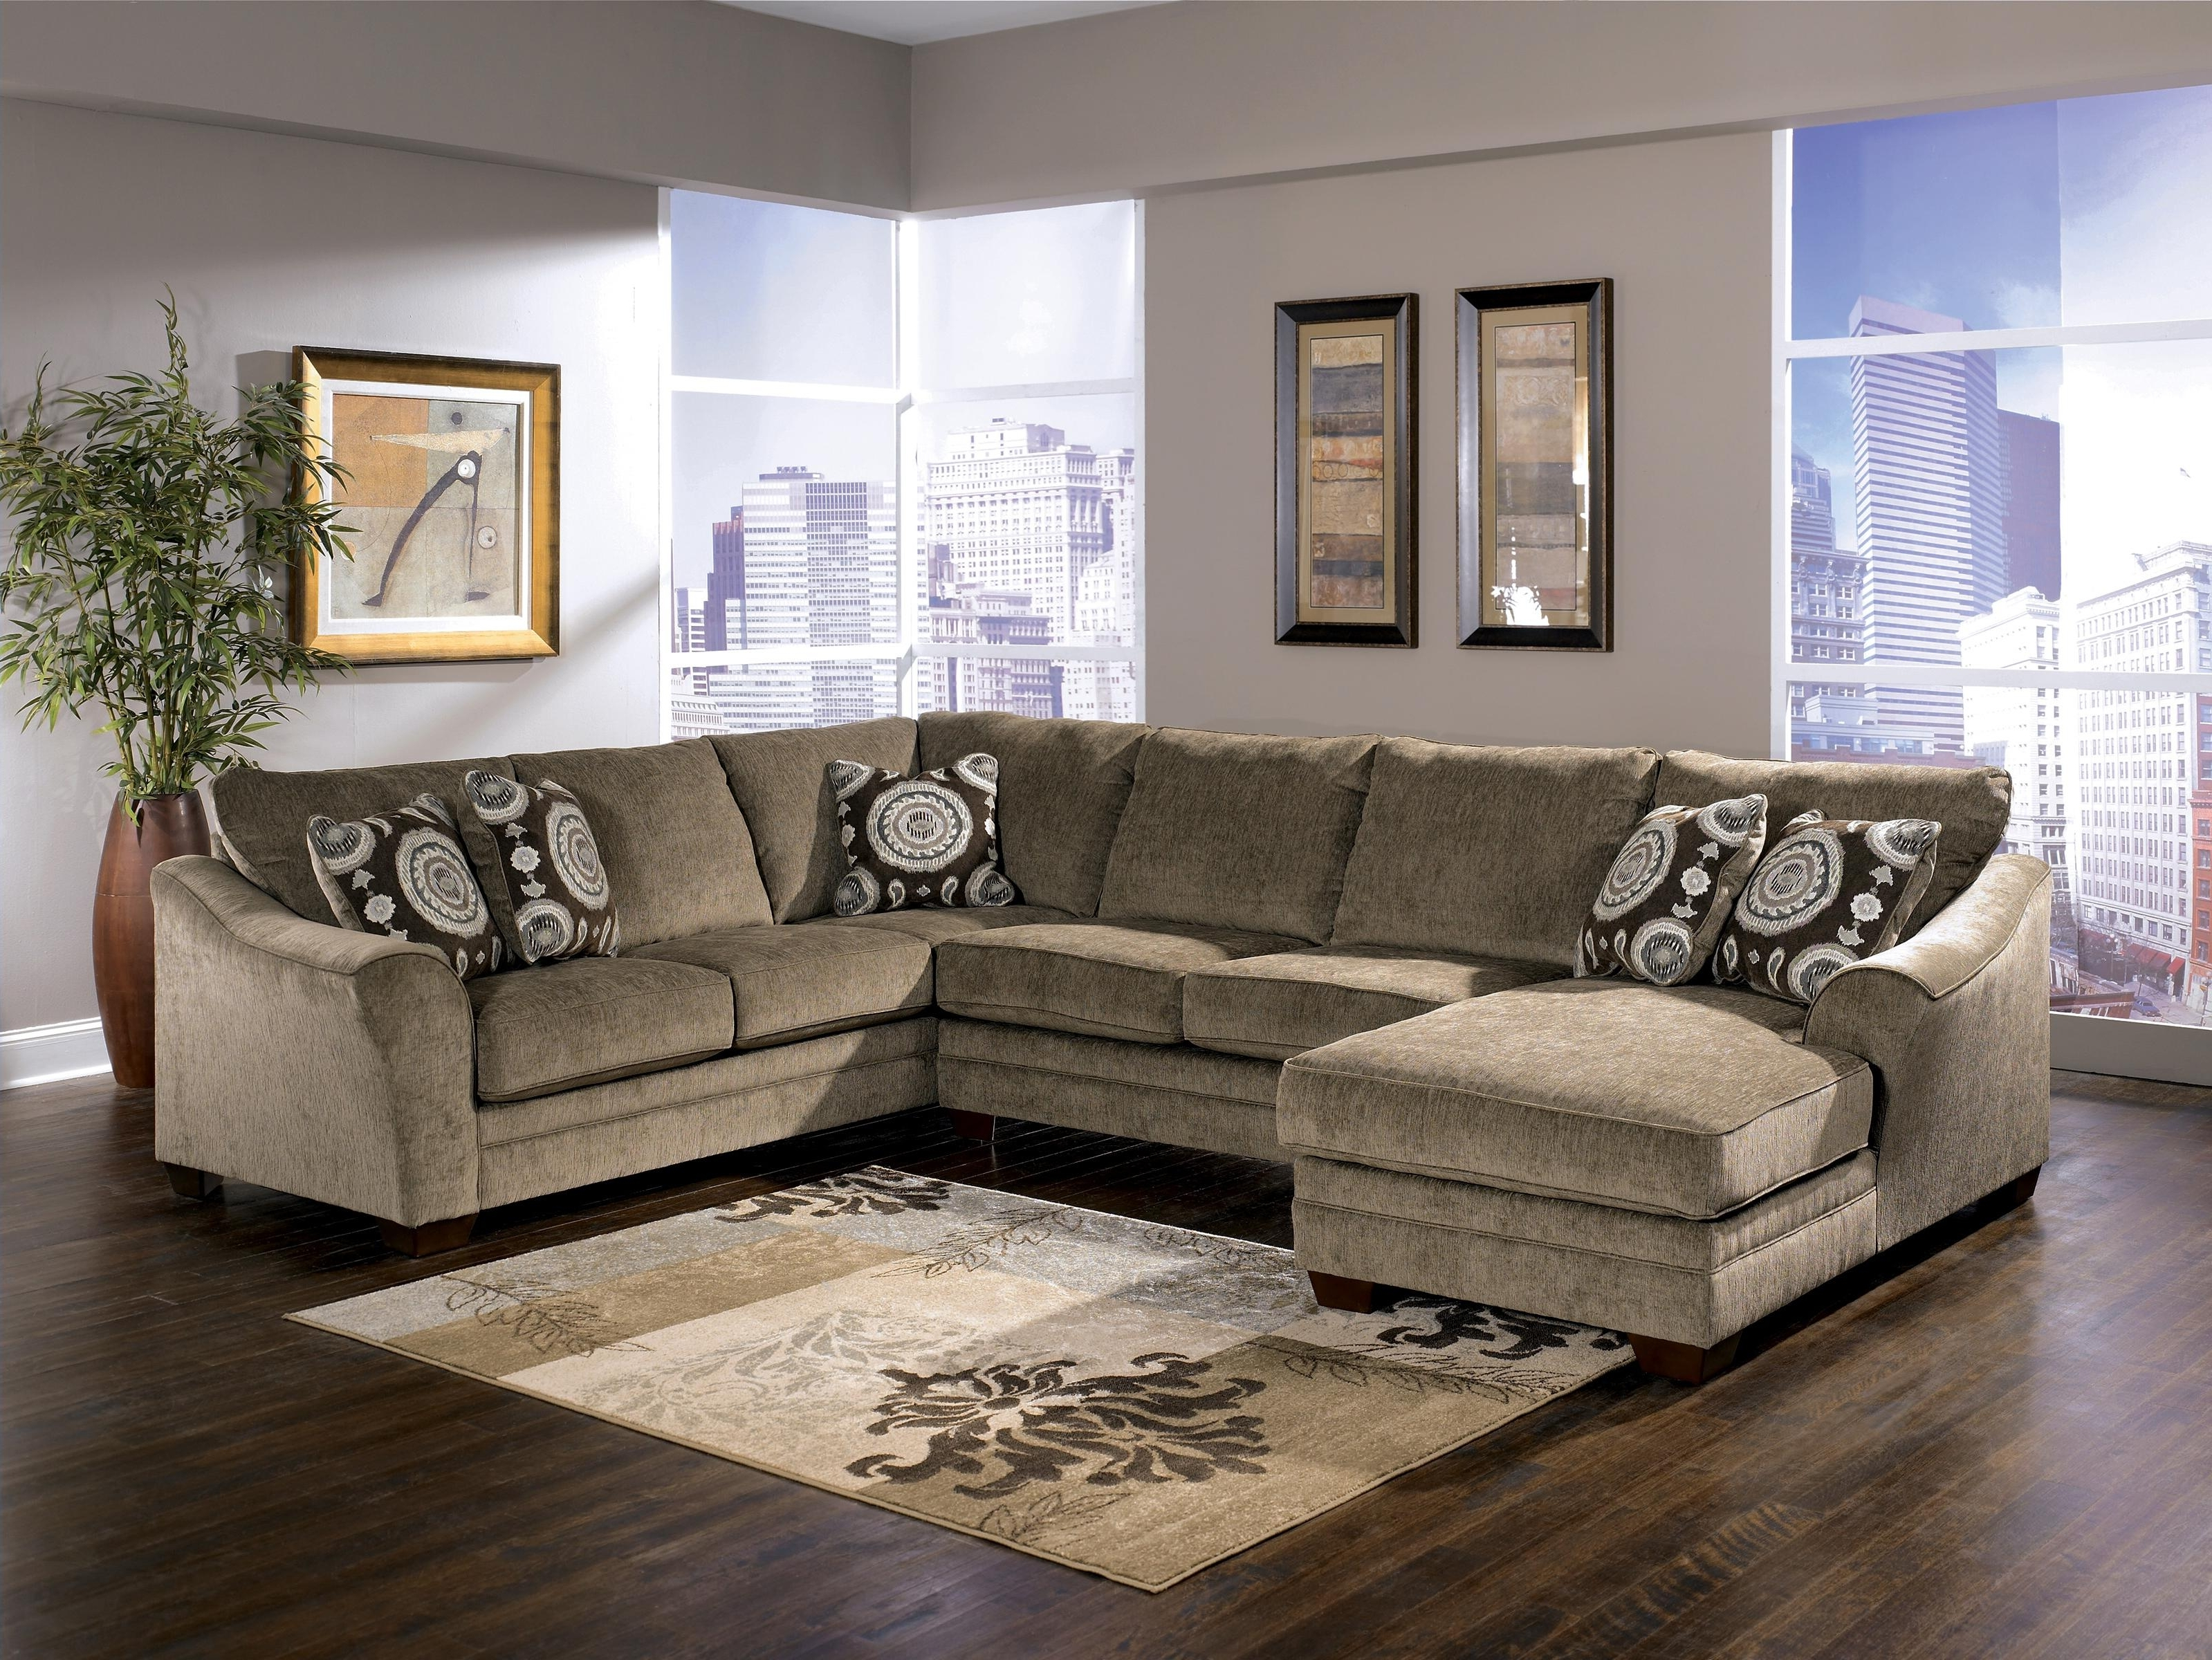 Signature Designashley Cosmo – Marble Sectional Sofa With In Most Recently Released Hattiesburg Ms Sectional Sofas (View 14 of 15)